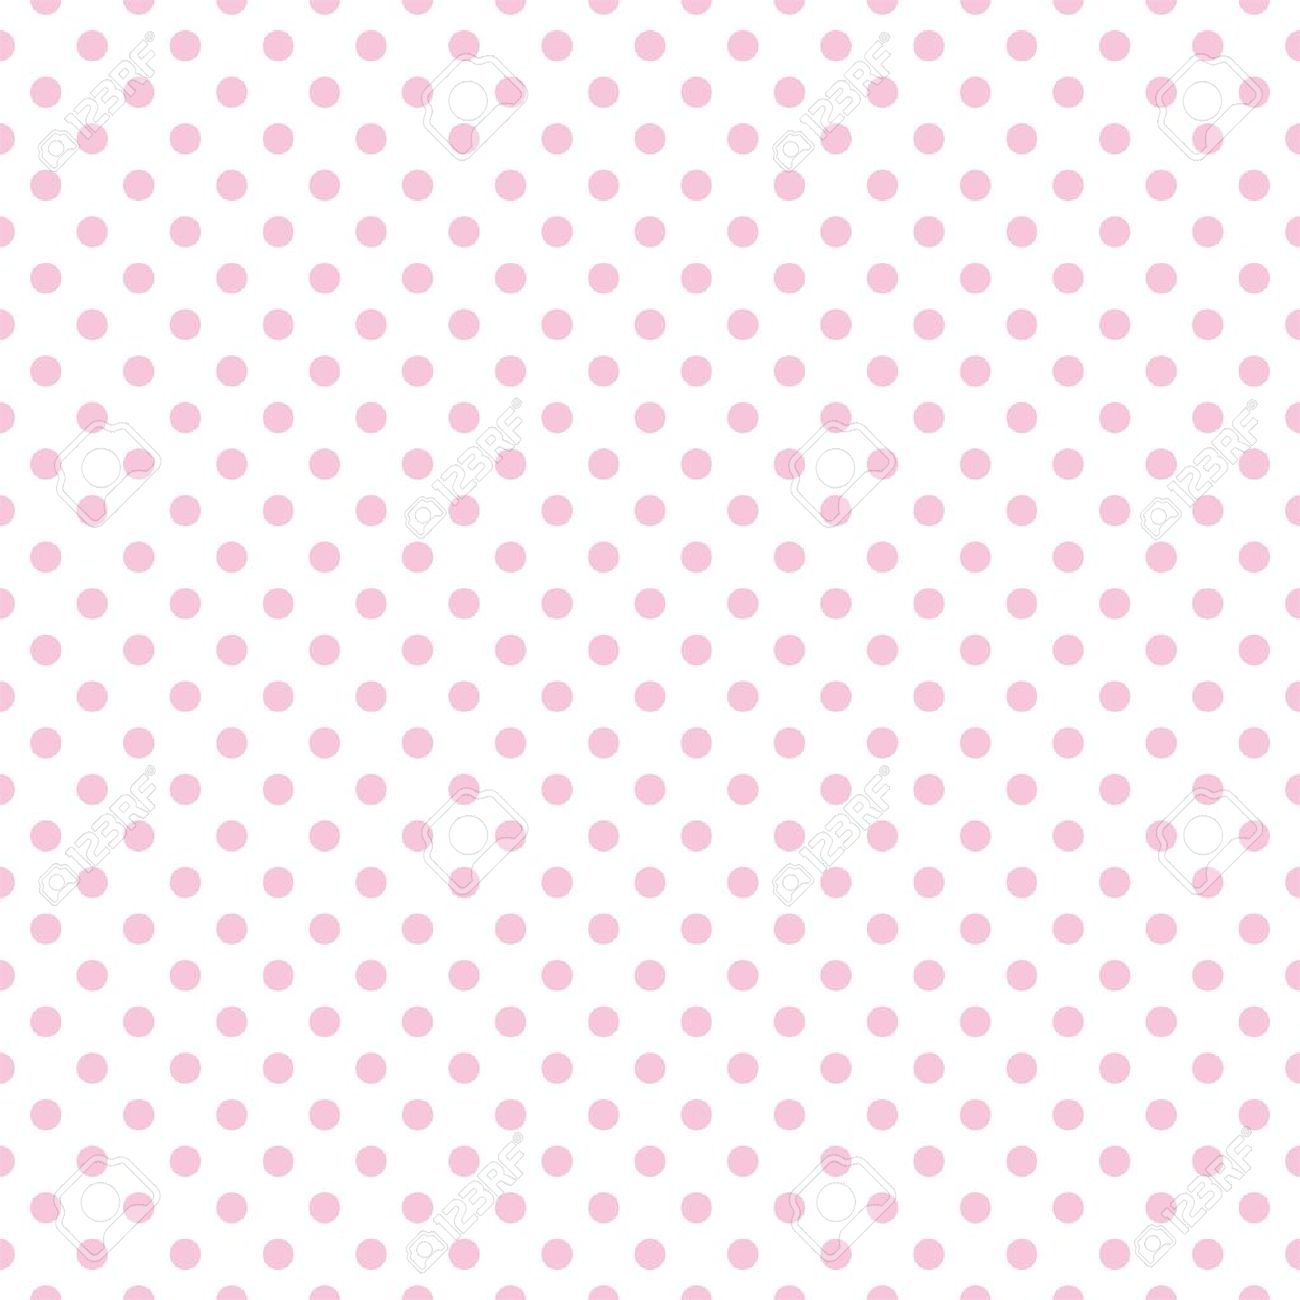 Seamless pattern with pastel pink polka dots on a white background Stock Vector - 22110121